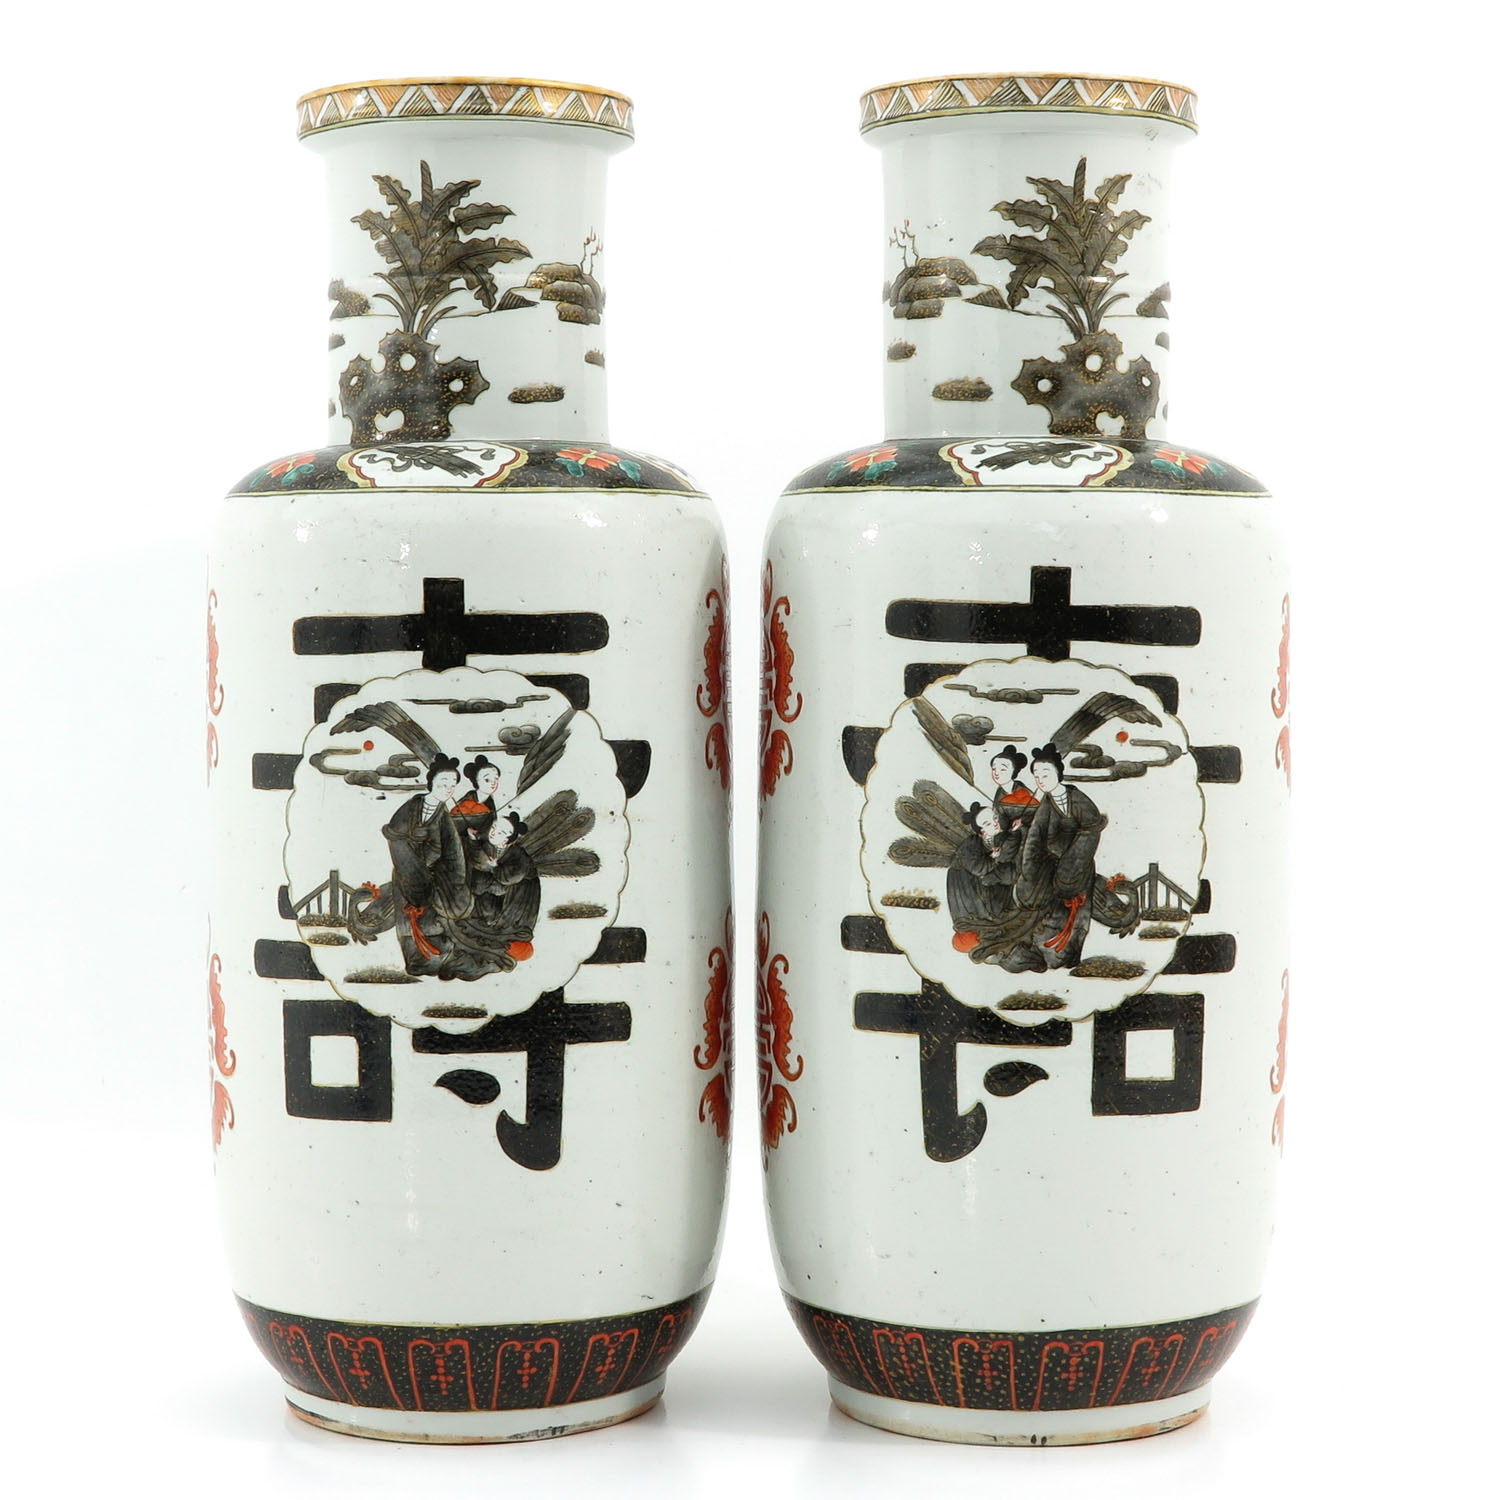 A Pair of Polychrome Decor Vases - Image 3 of 10